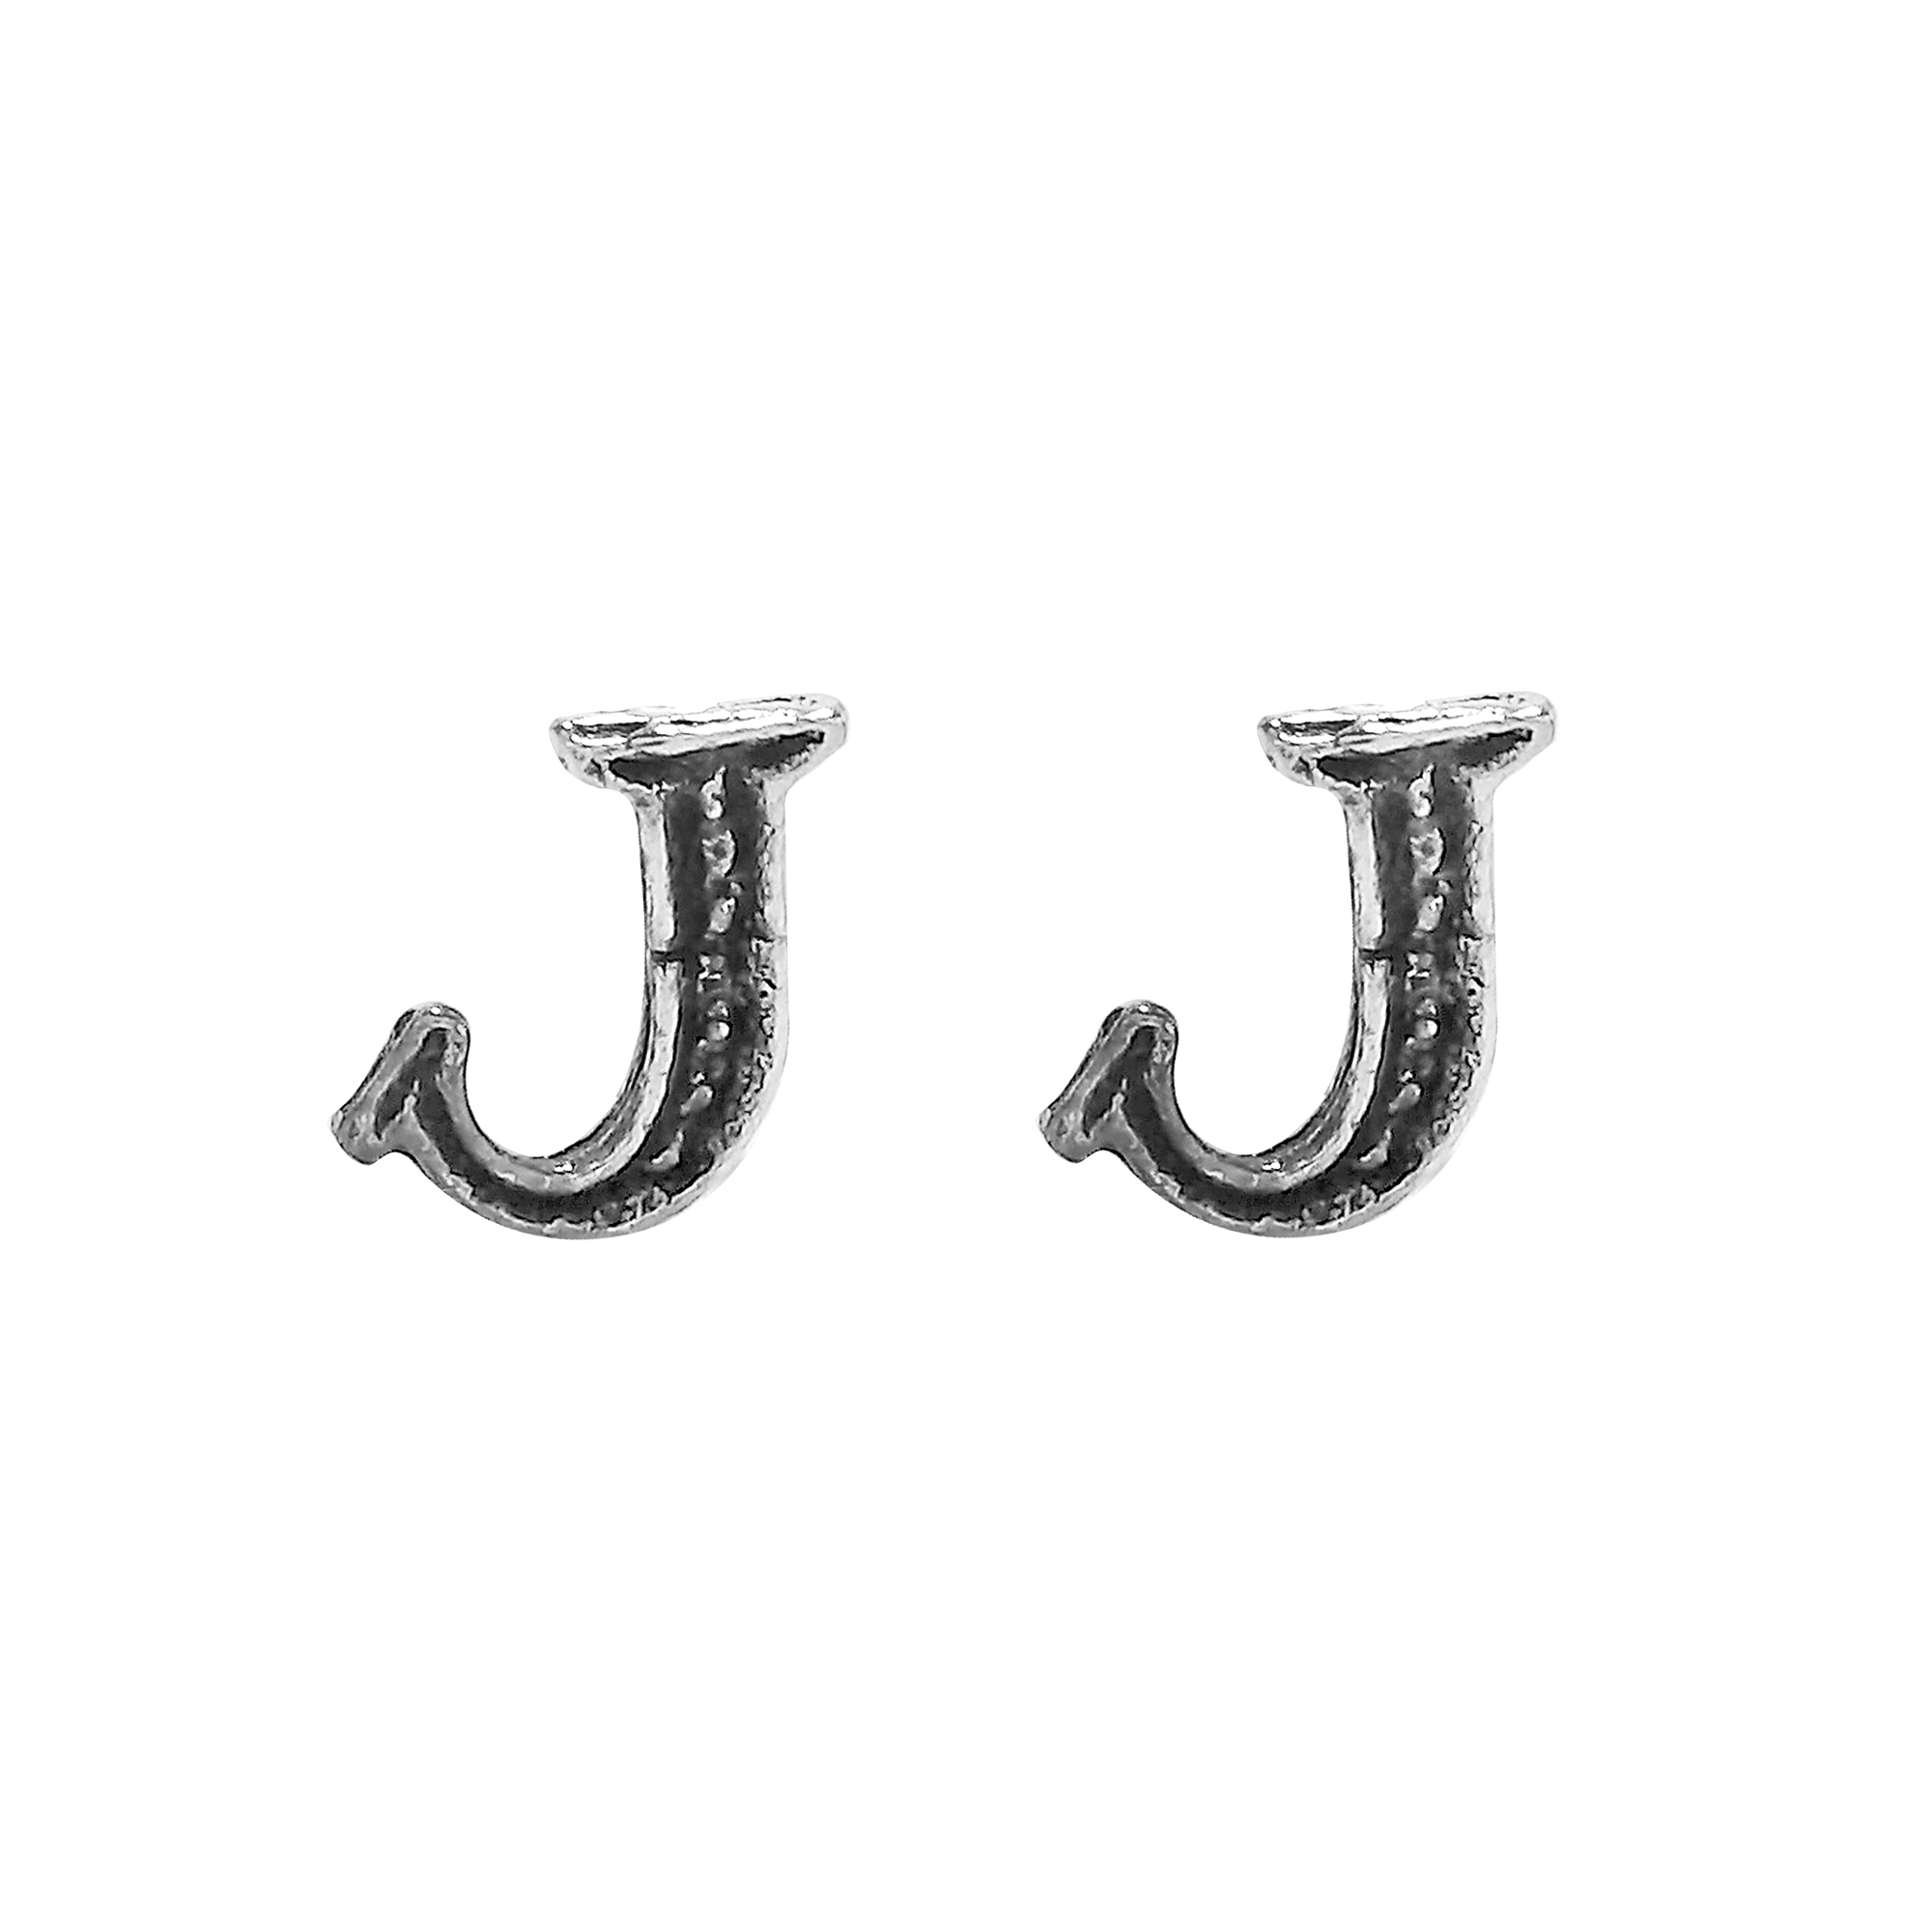 earrings these of yet details every feature in handmade plain a the products this aeravida pe alphabet available silver pair simple letter stylish s stud sterling cool are